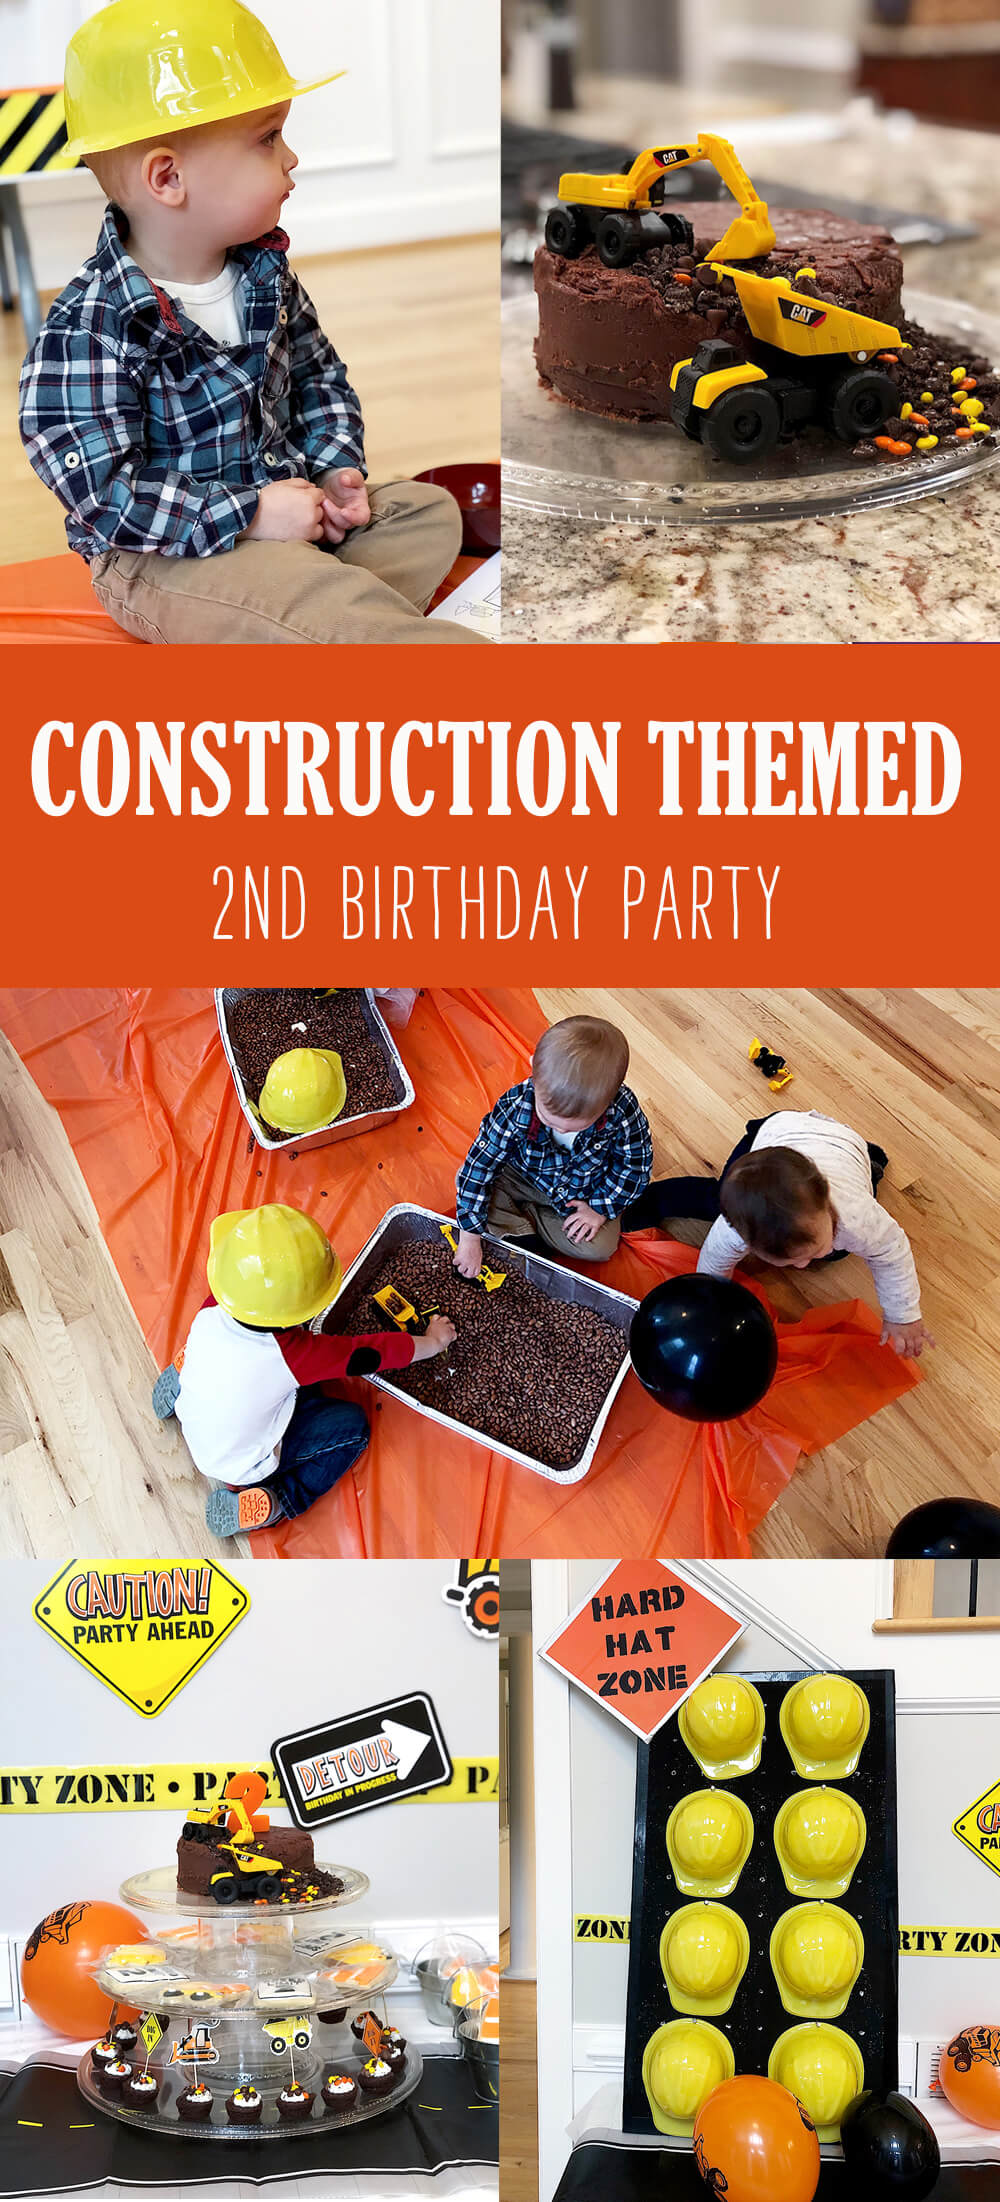 Construction birthday party for a 2nd birthday